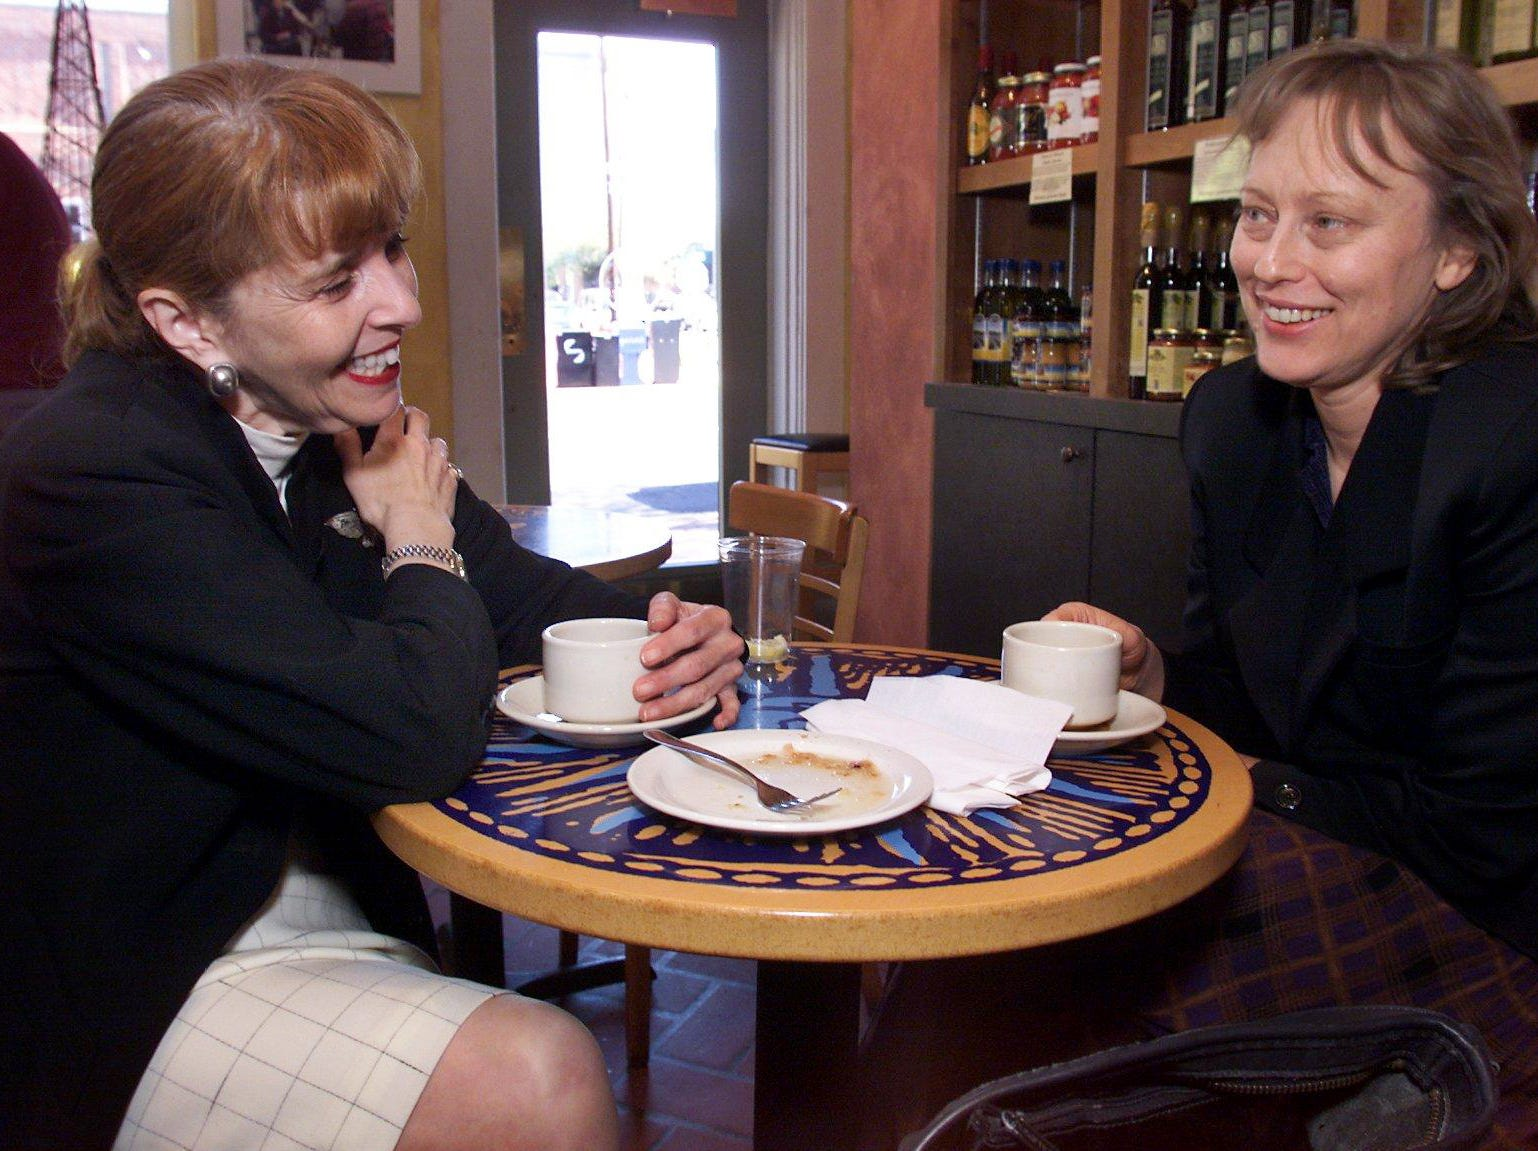 Michele Rose, left, and Marilyn McCabe enjoy coffee and food at Provence Breads and Cafe in Hillsboro Village Oct. 25, 1999.